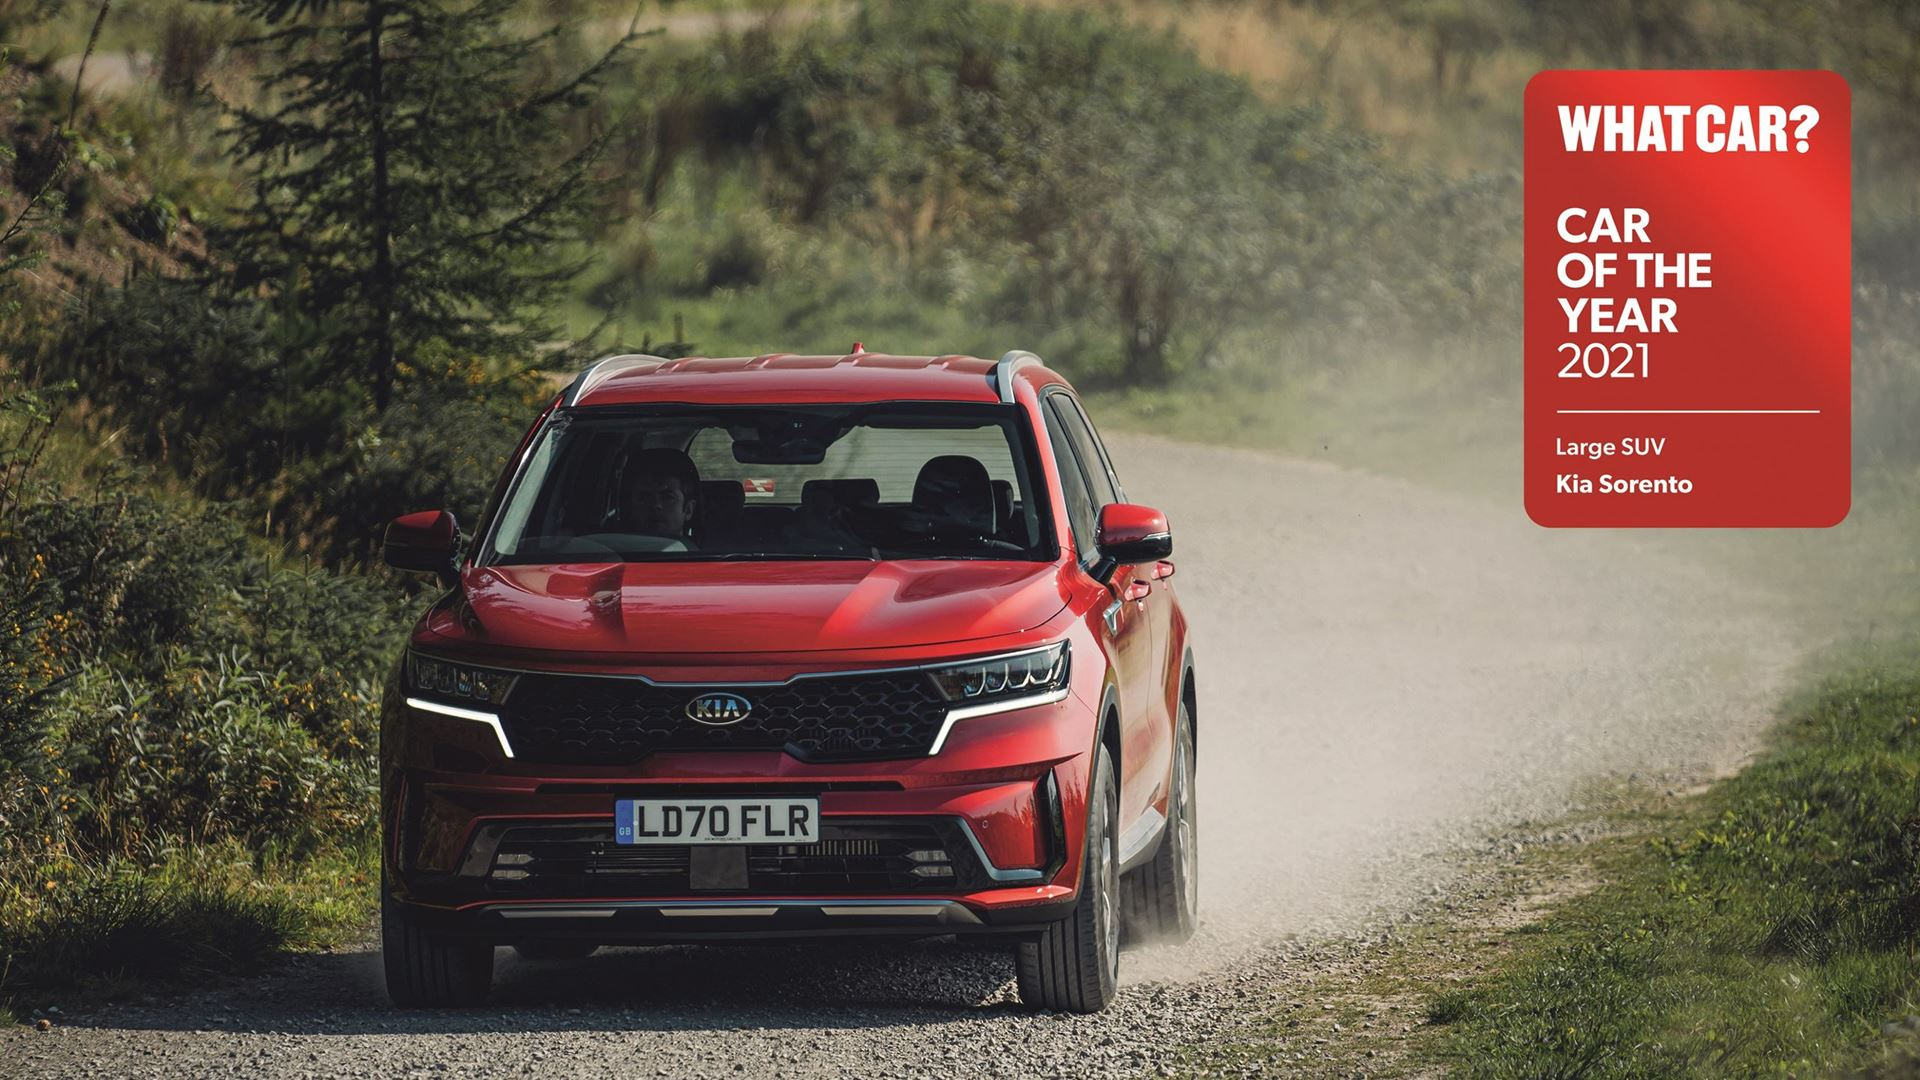 All-new Sorento wins 'Large SUV of the year' at 2021 What Car? Car Of The Year awards - Image 6